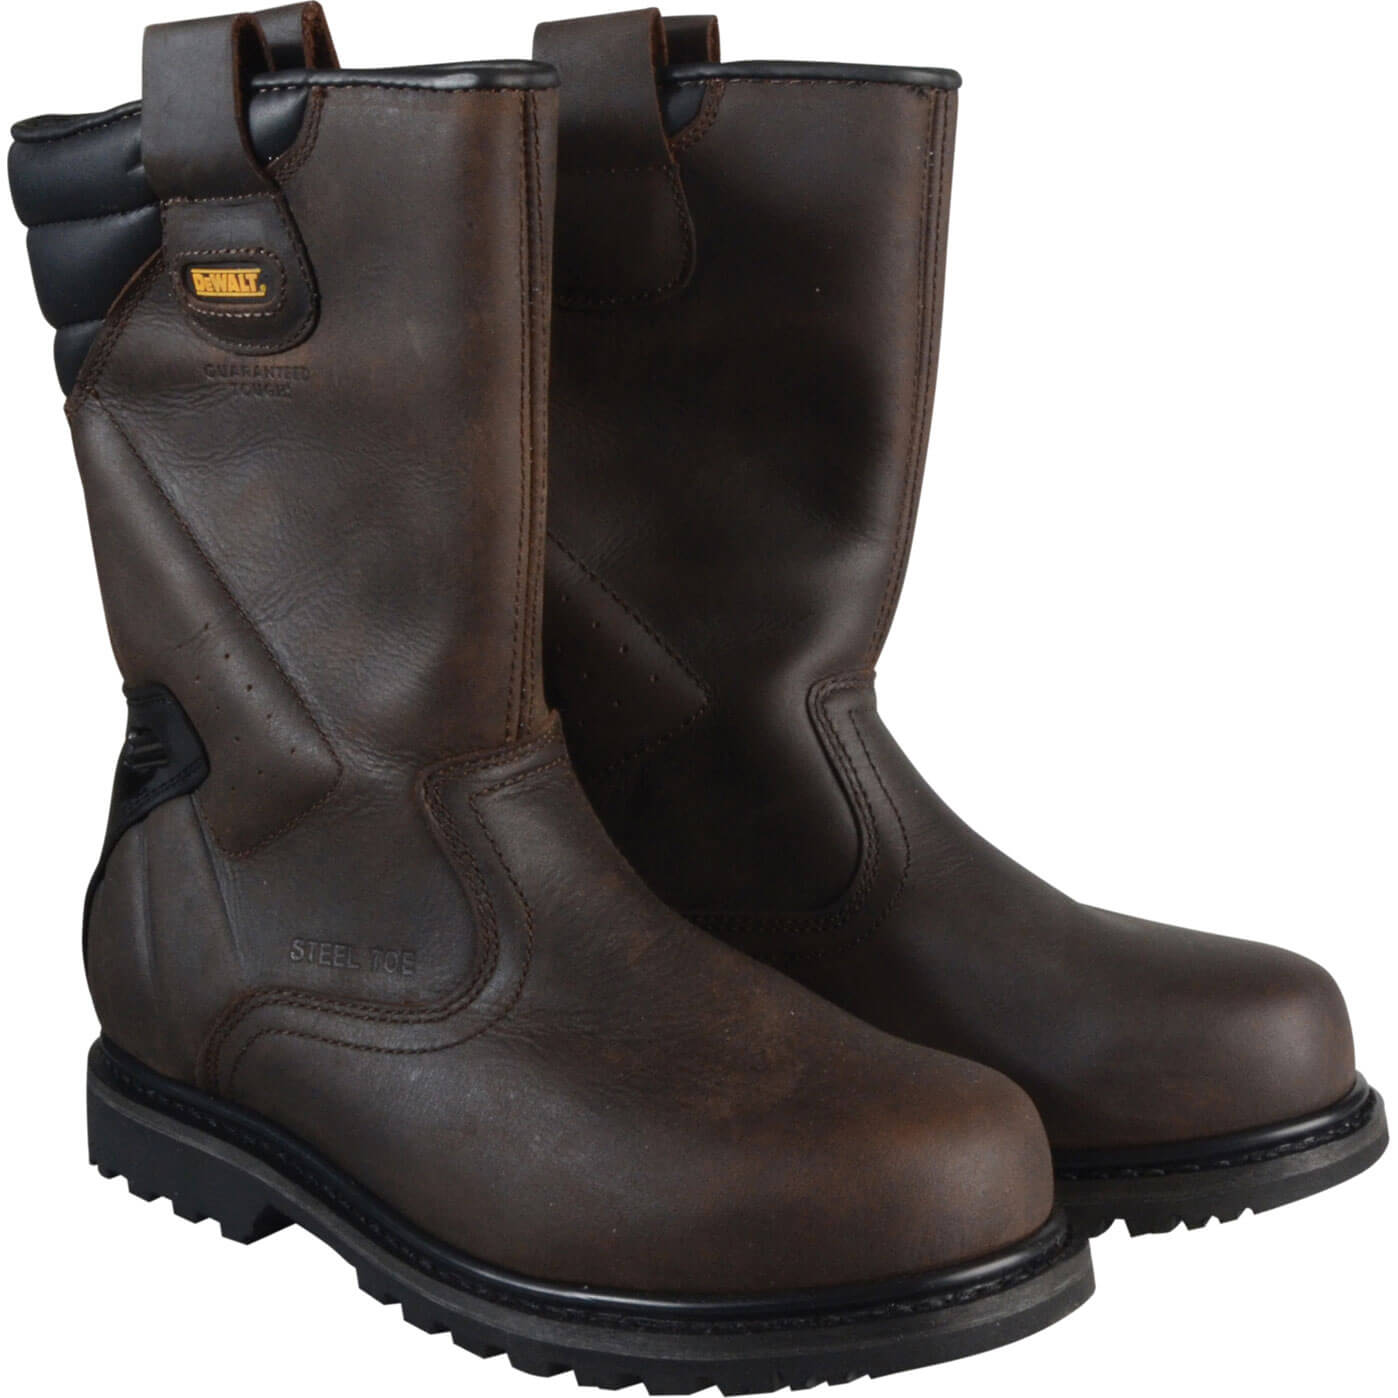 DeWalt Mens Rigger Safety Boots Brown 11